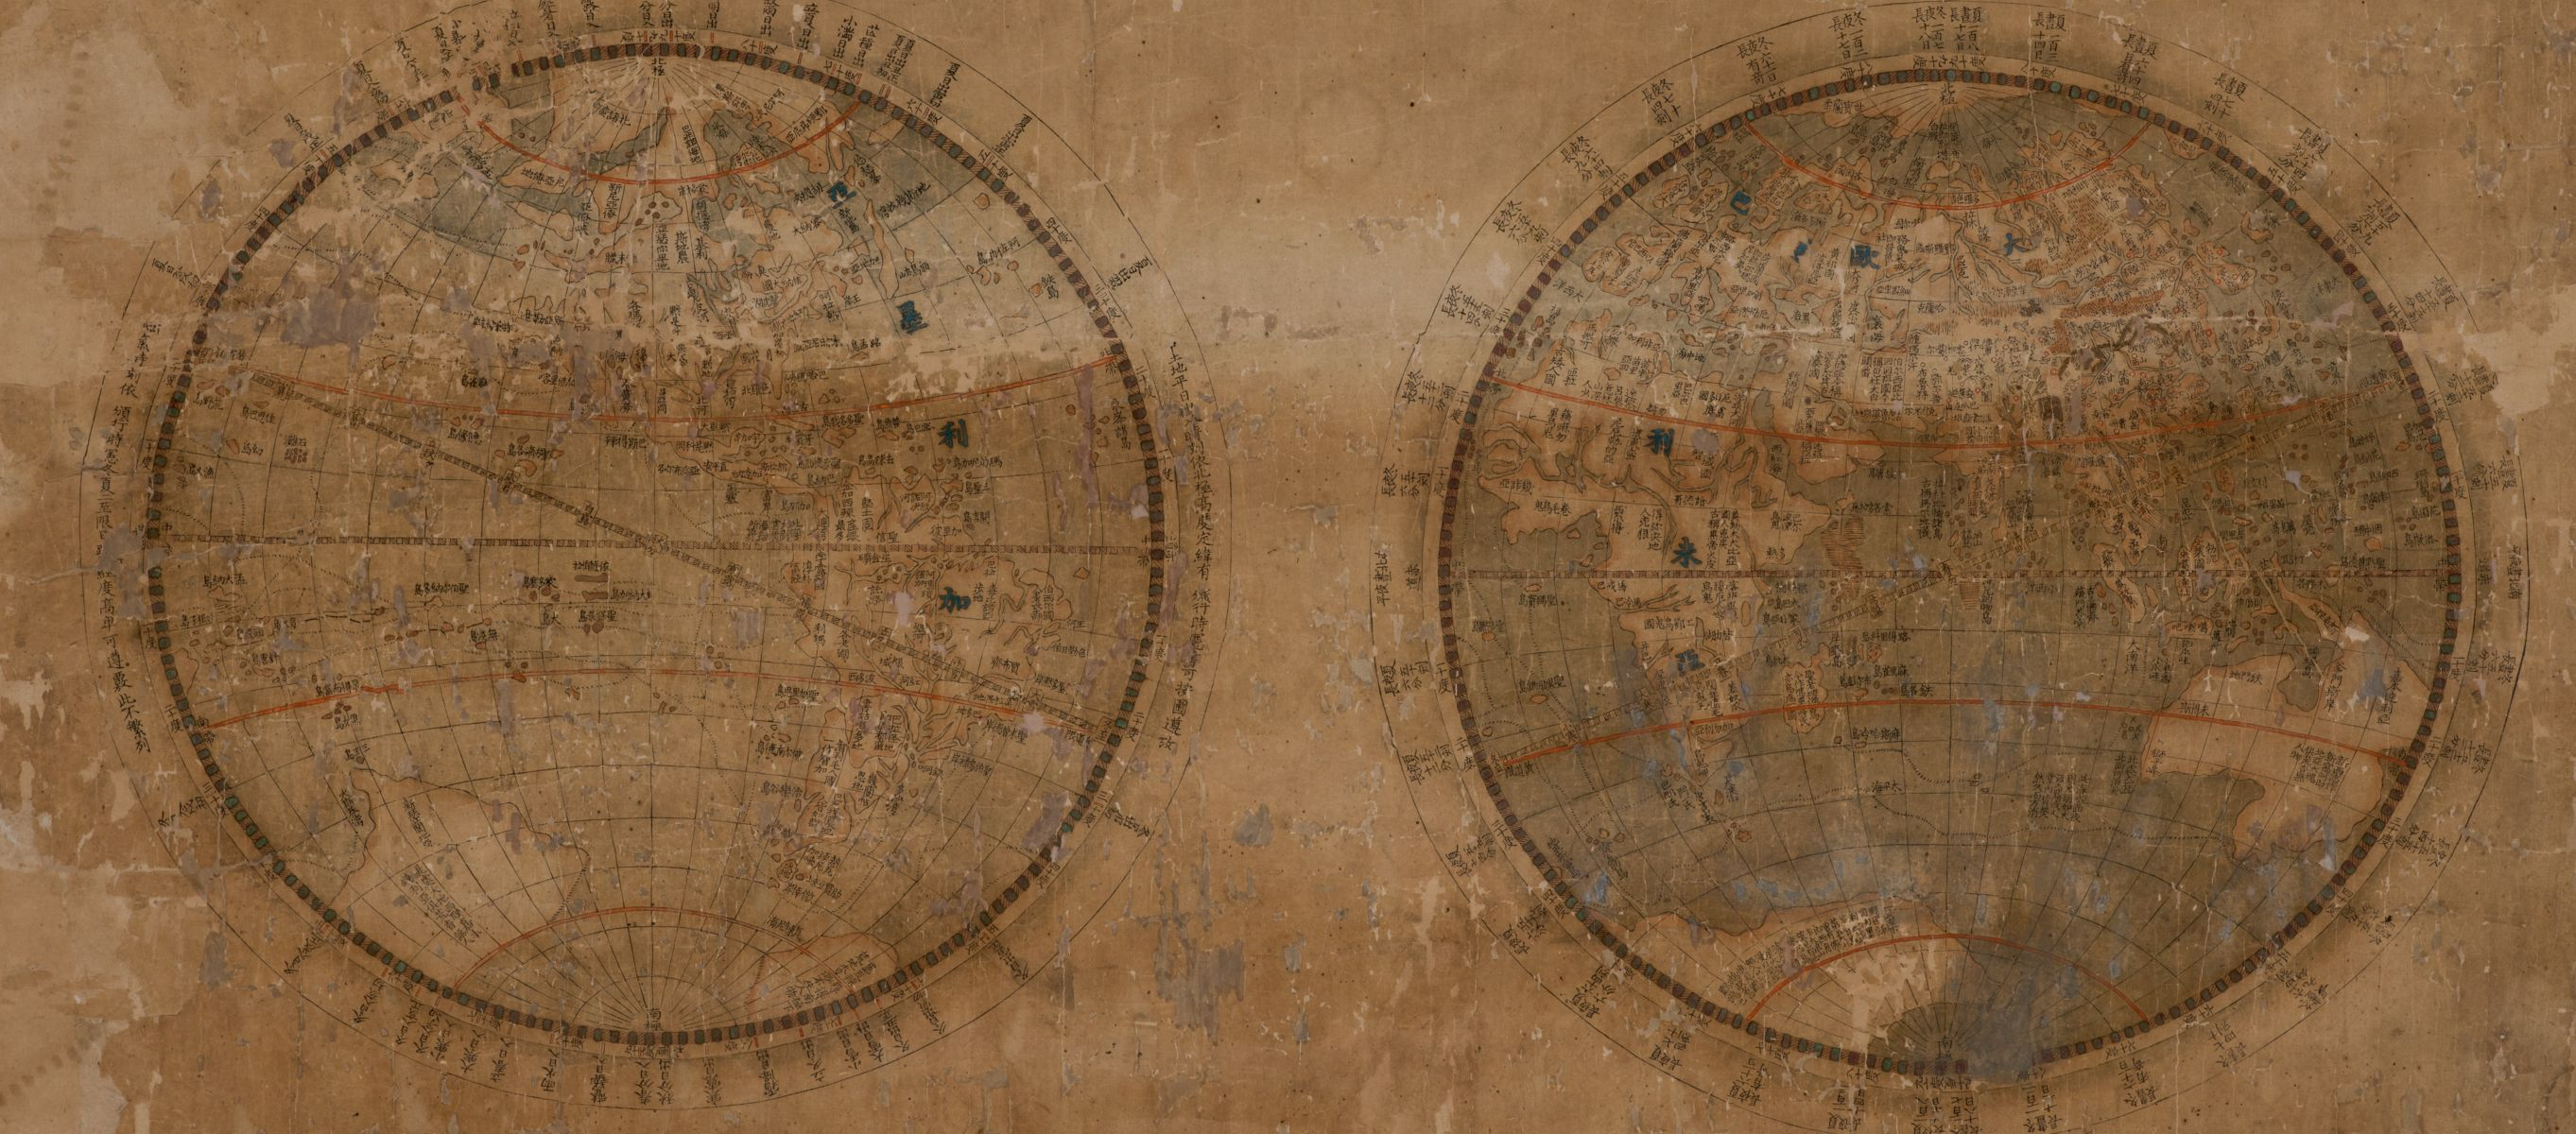 Zhuang Tingfu: Cartographic Encounters and Echoes